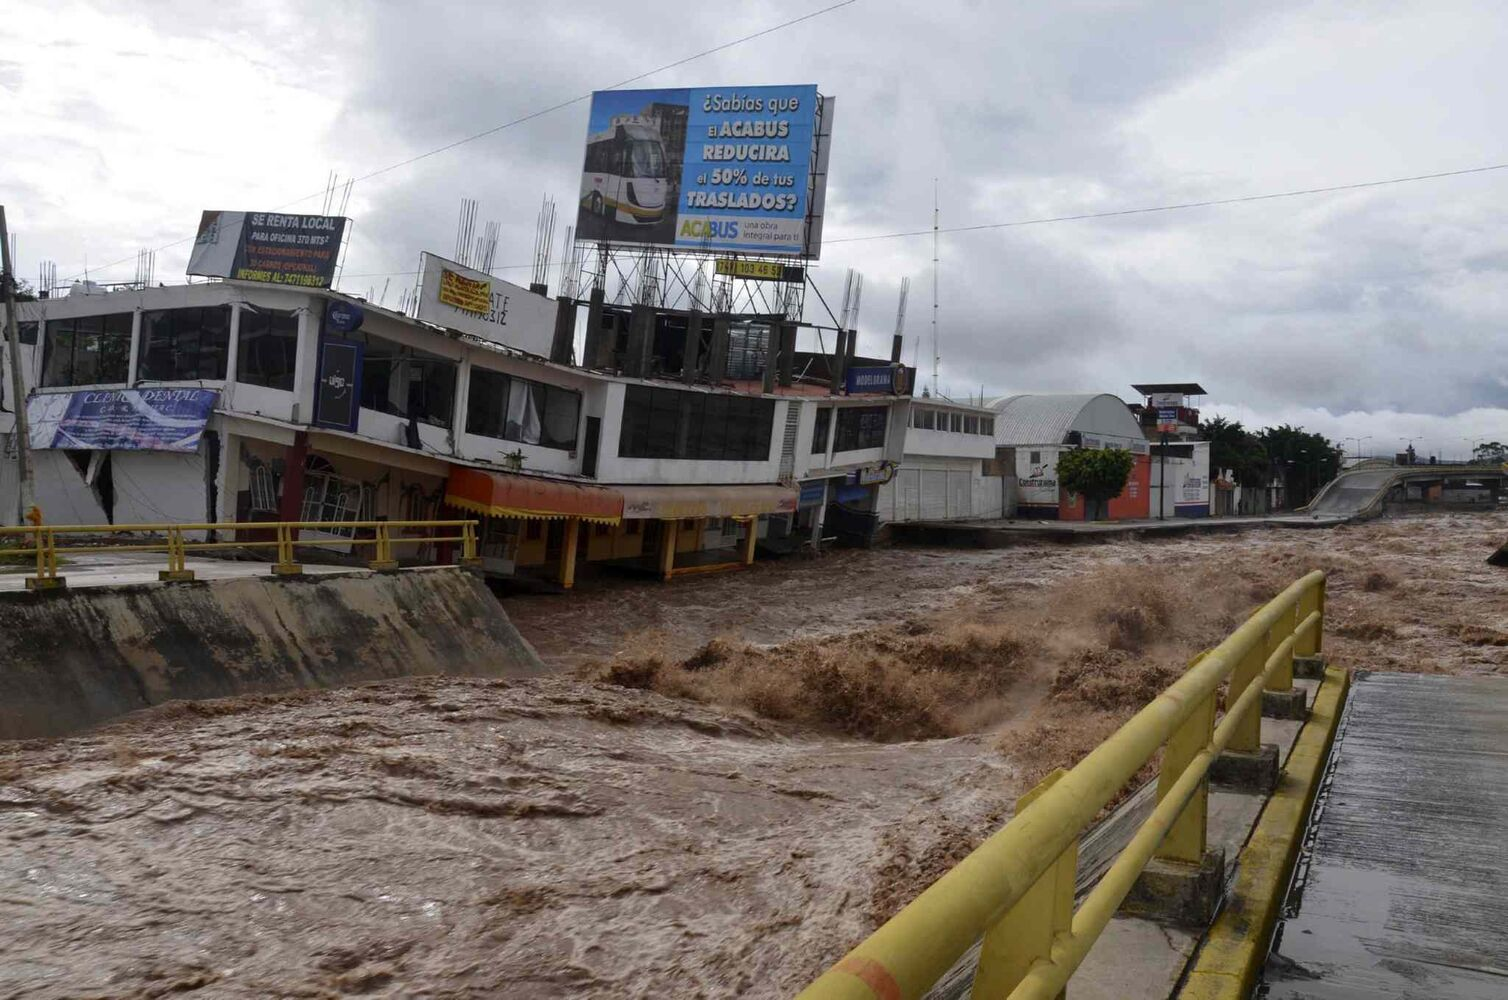 Floodwaters rage past an urban area after the Huacapa River overflowed due to heavy rains caused by Tropical Storm Manuel in Chilpancingo, Mexico, Monday, Sept. 16, 2013.  (Alejandrino Gonzalez / The Associated Press)